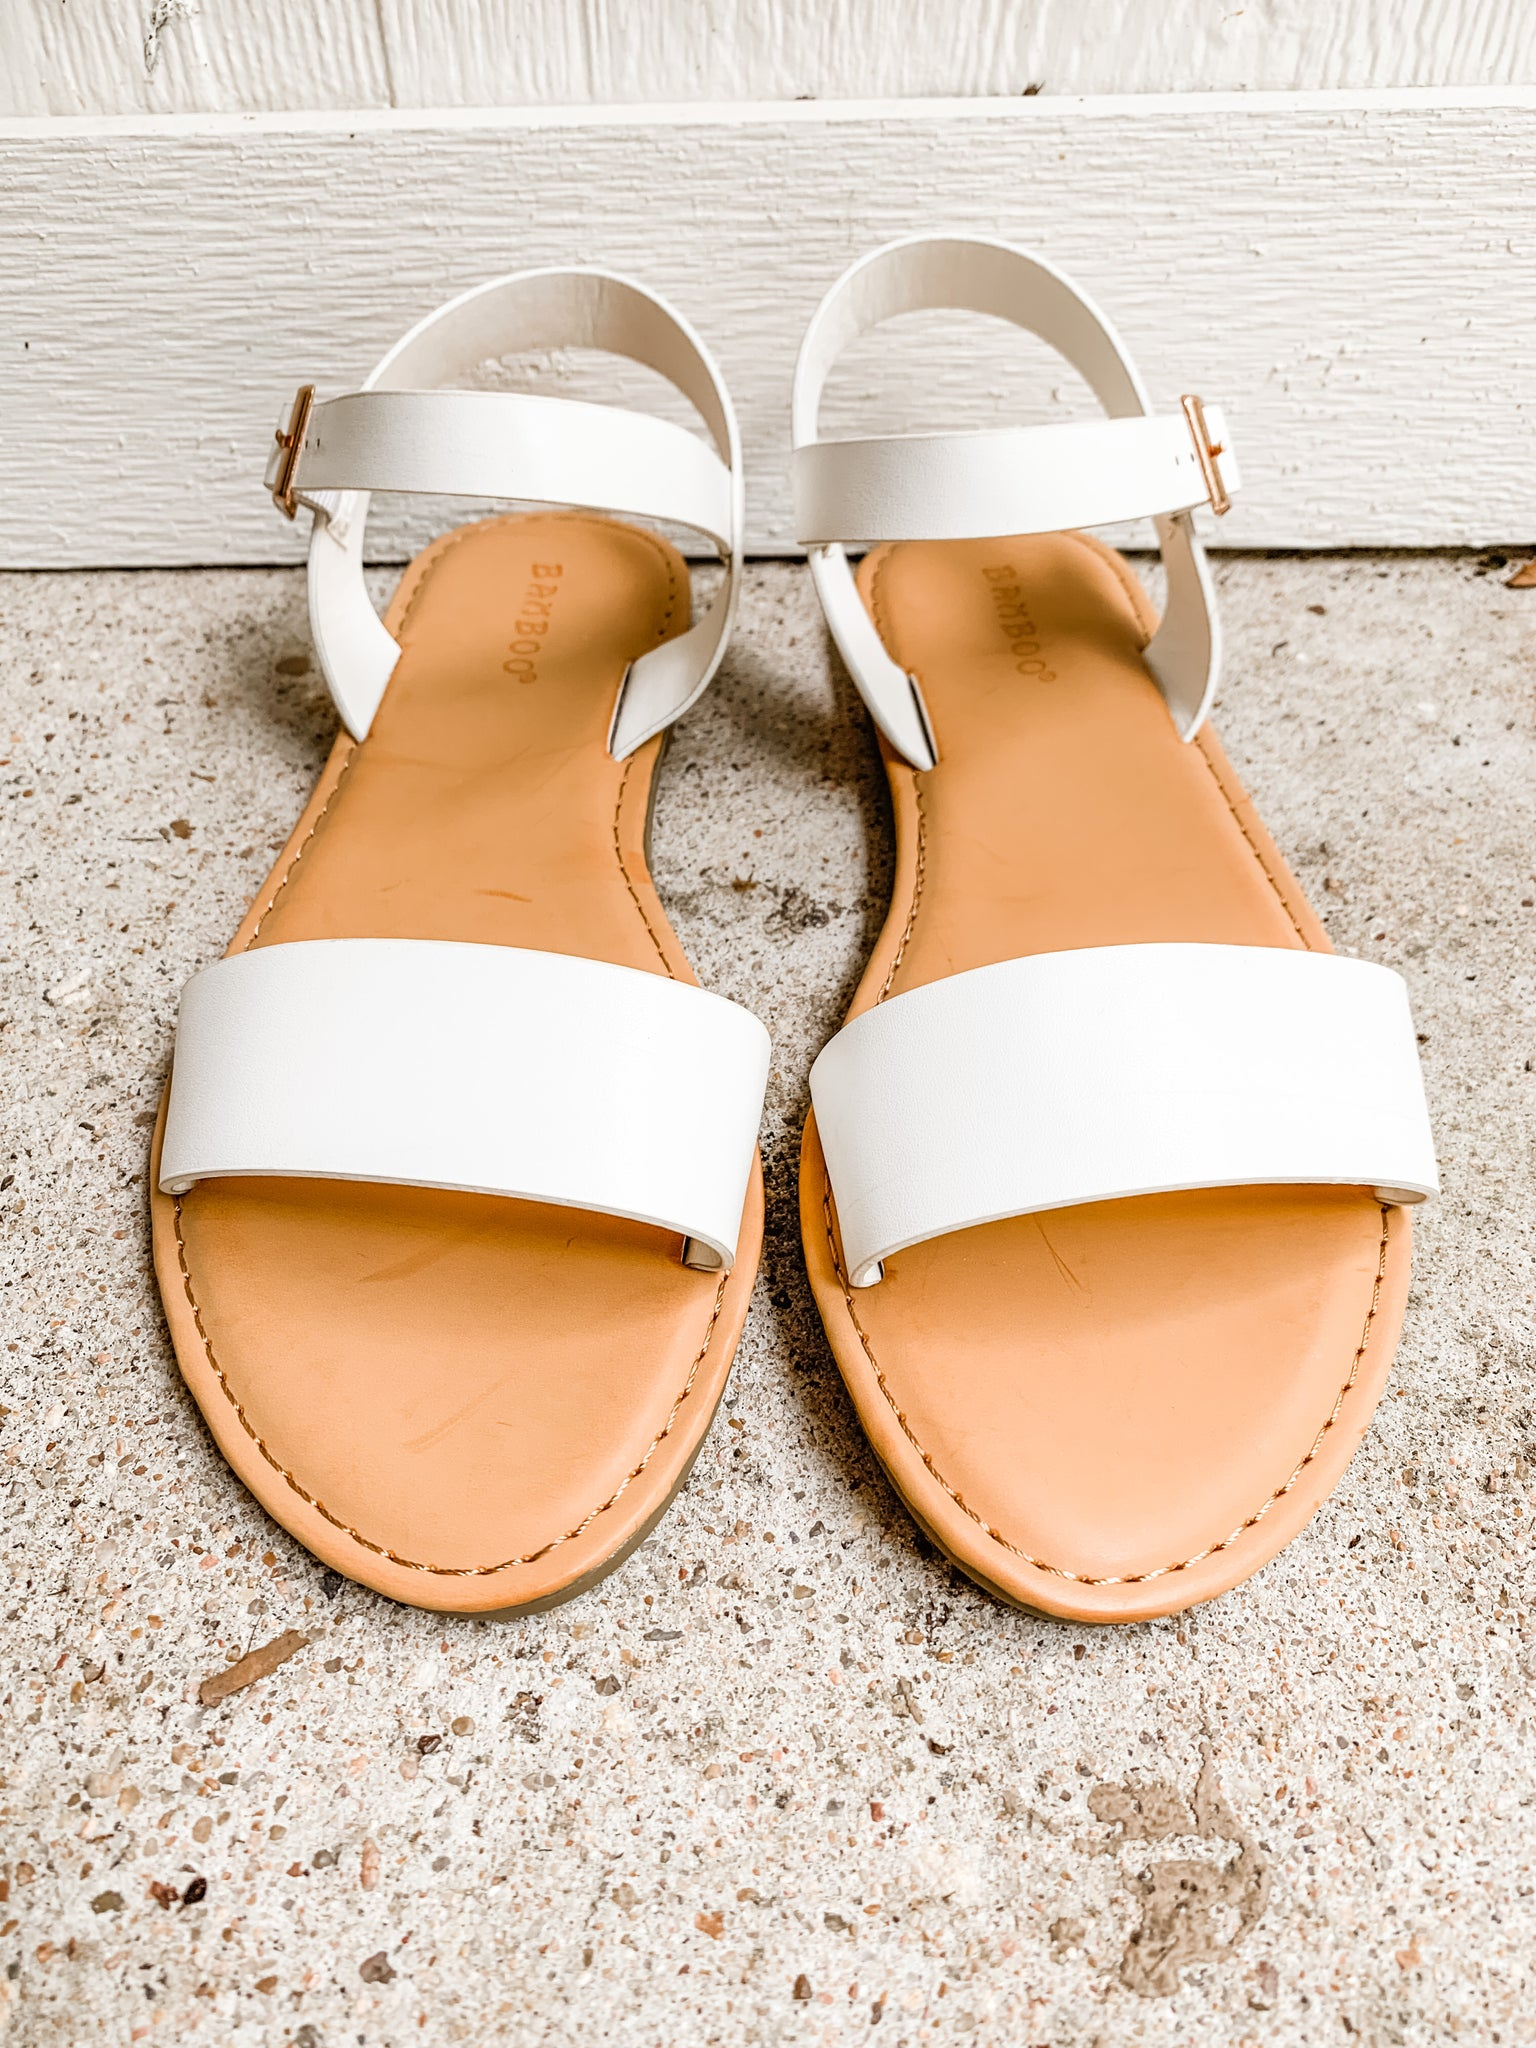 Catch The Ocean Sandals: White